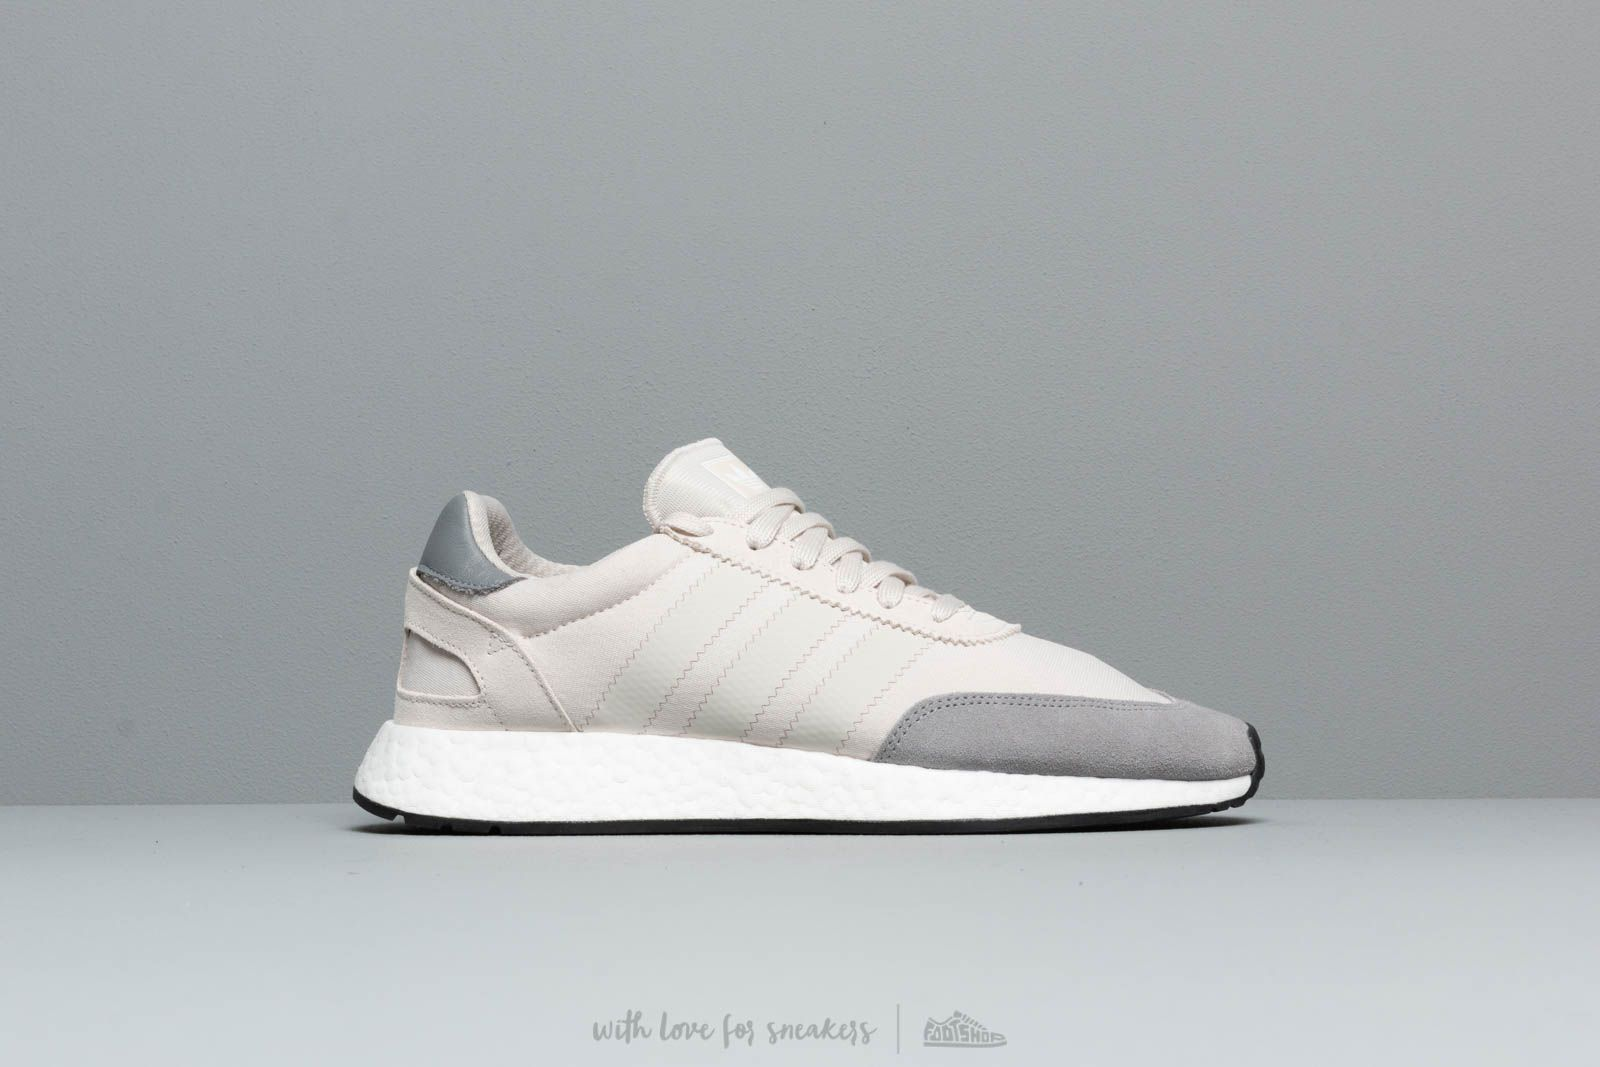 094c989e adidas I-5923 Raw White/ Raw White/ Grethr at a great price 3